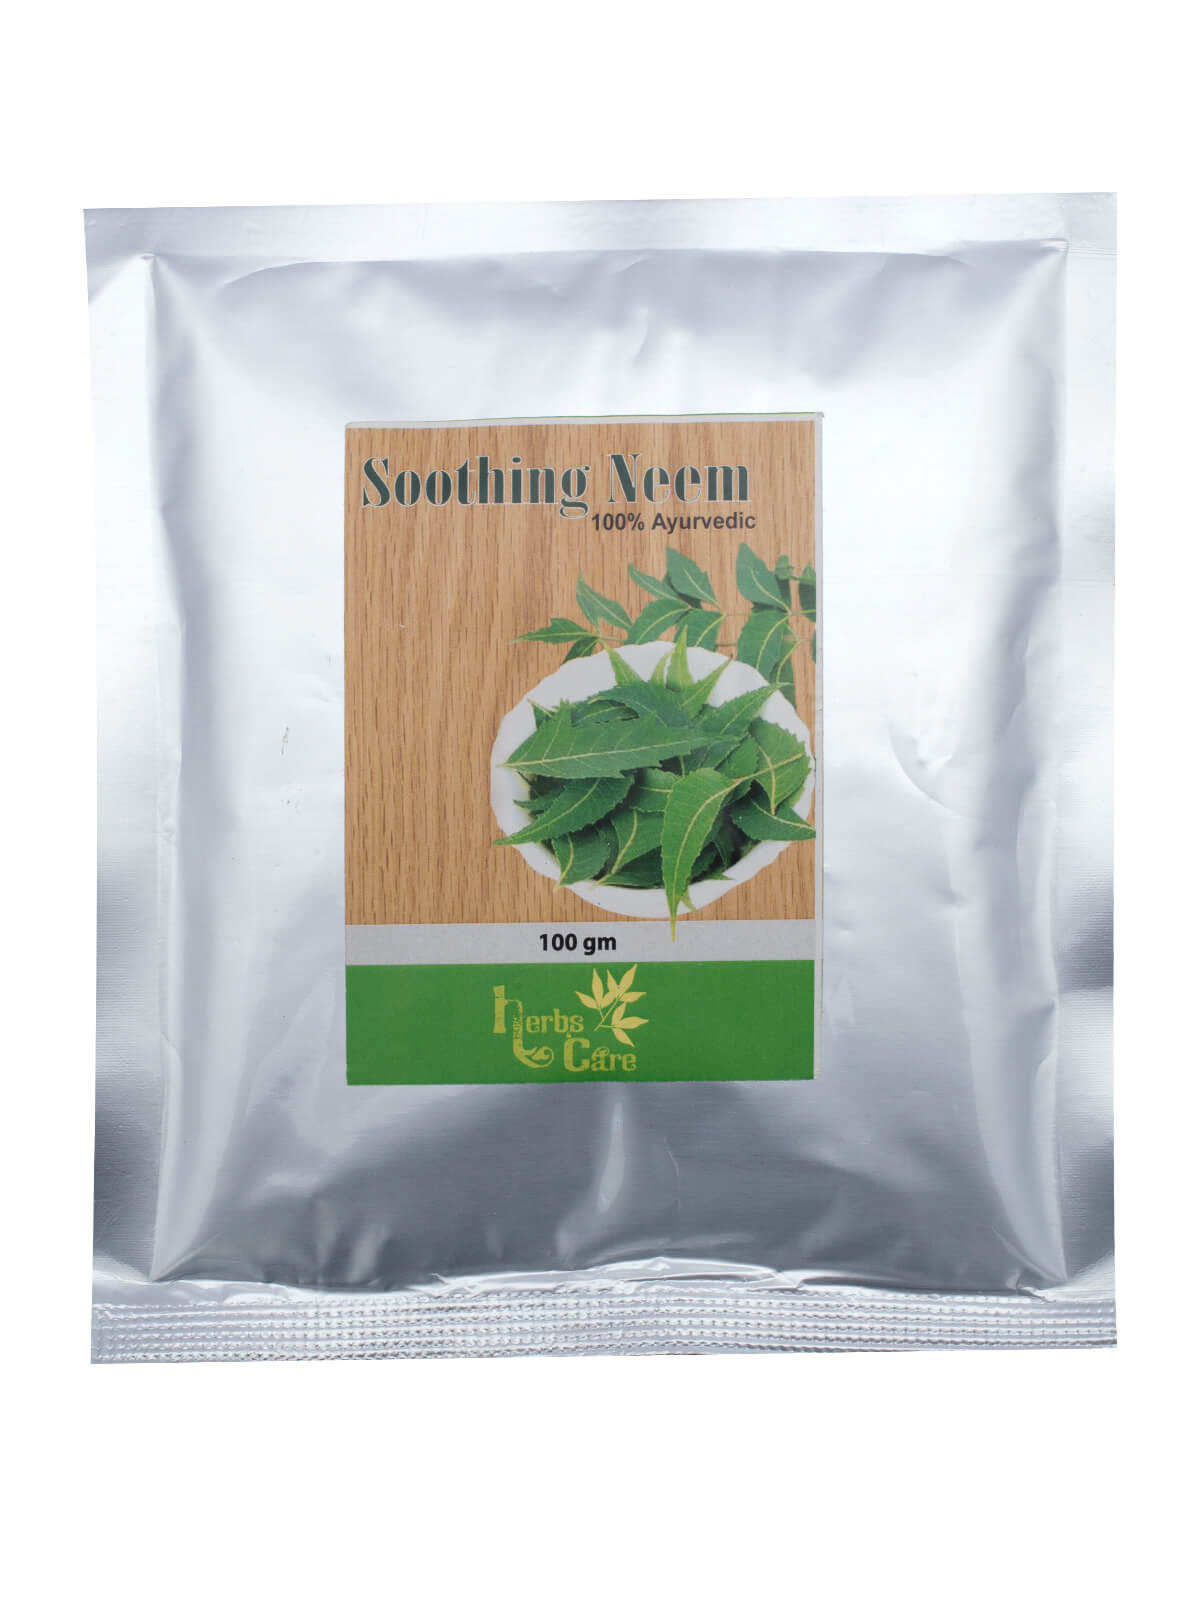 Natural & Pure Ayurvedic Soothing Neem